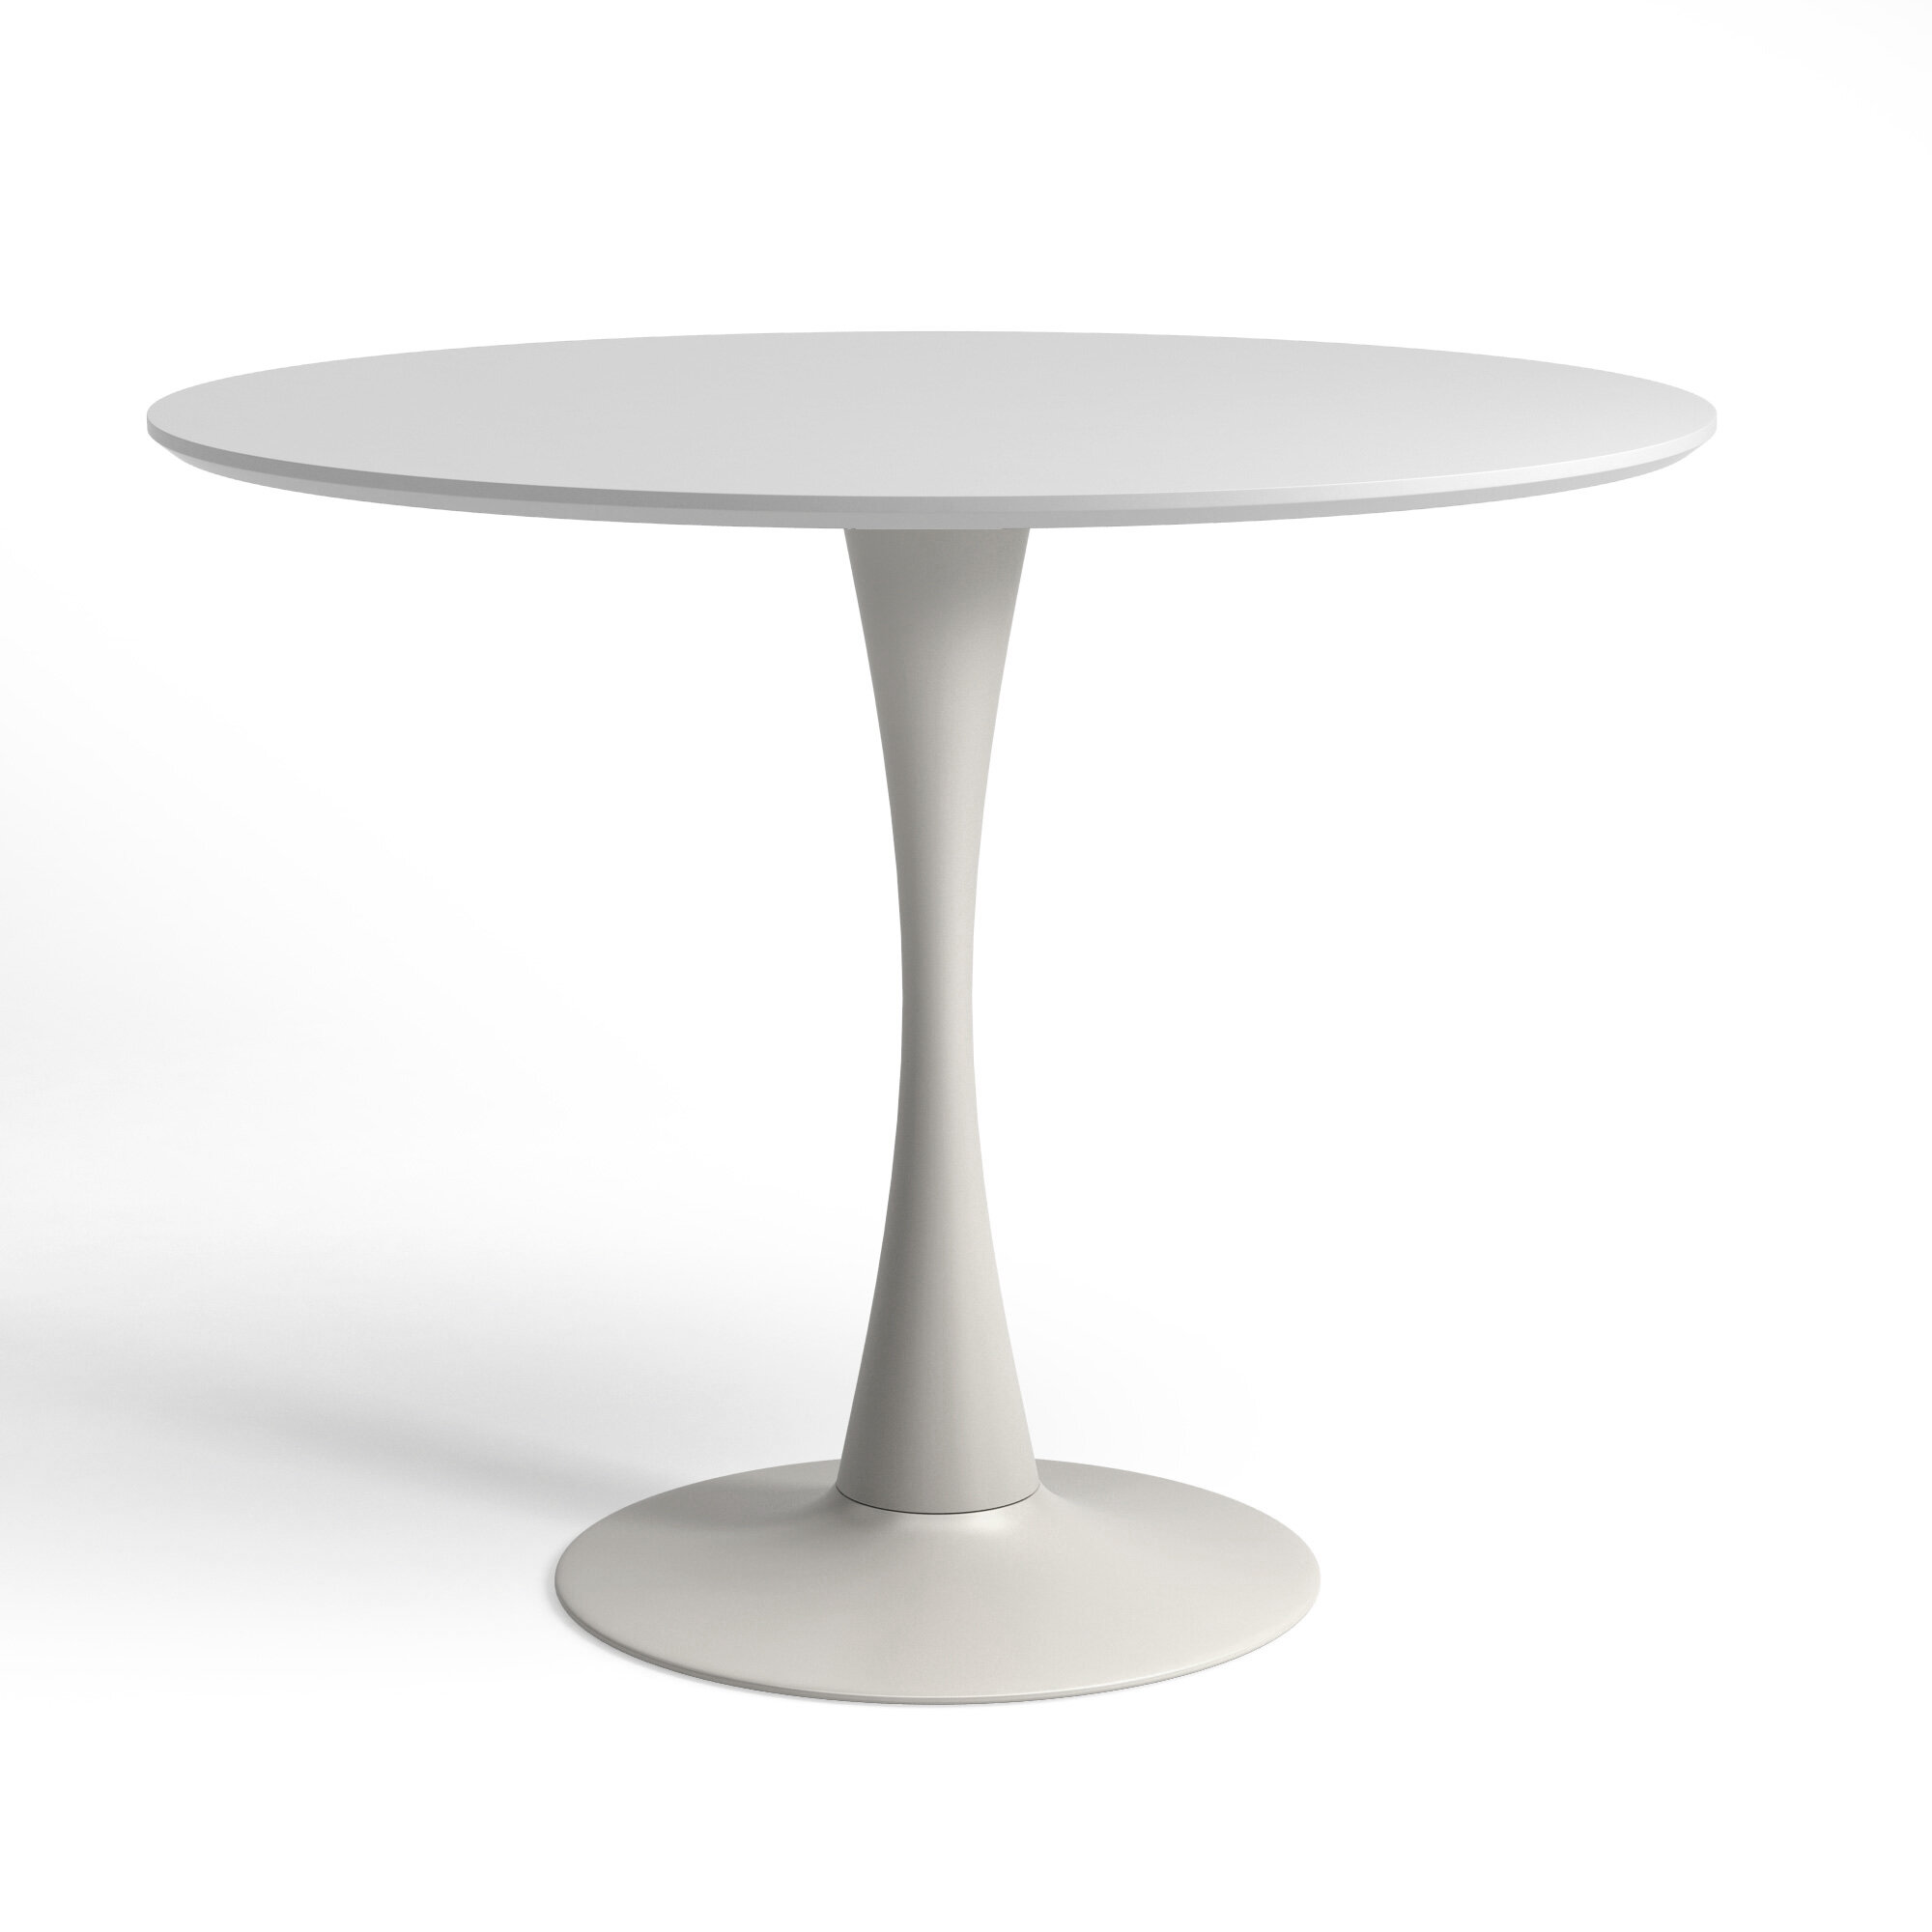 pedestal by ray to everyday home table products round oval number rachael dining item classic black legacy